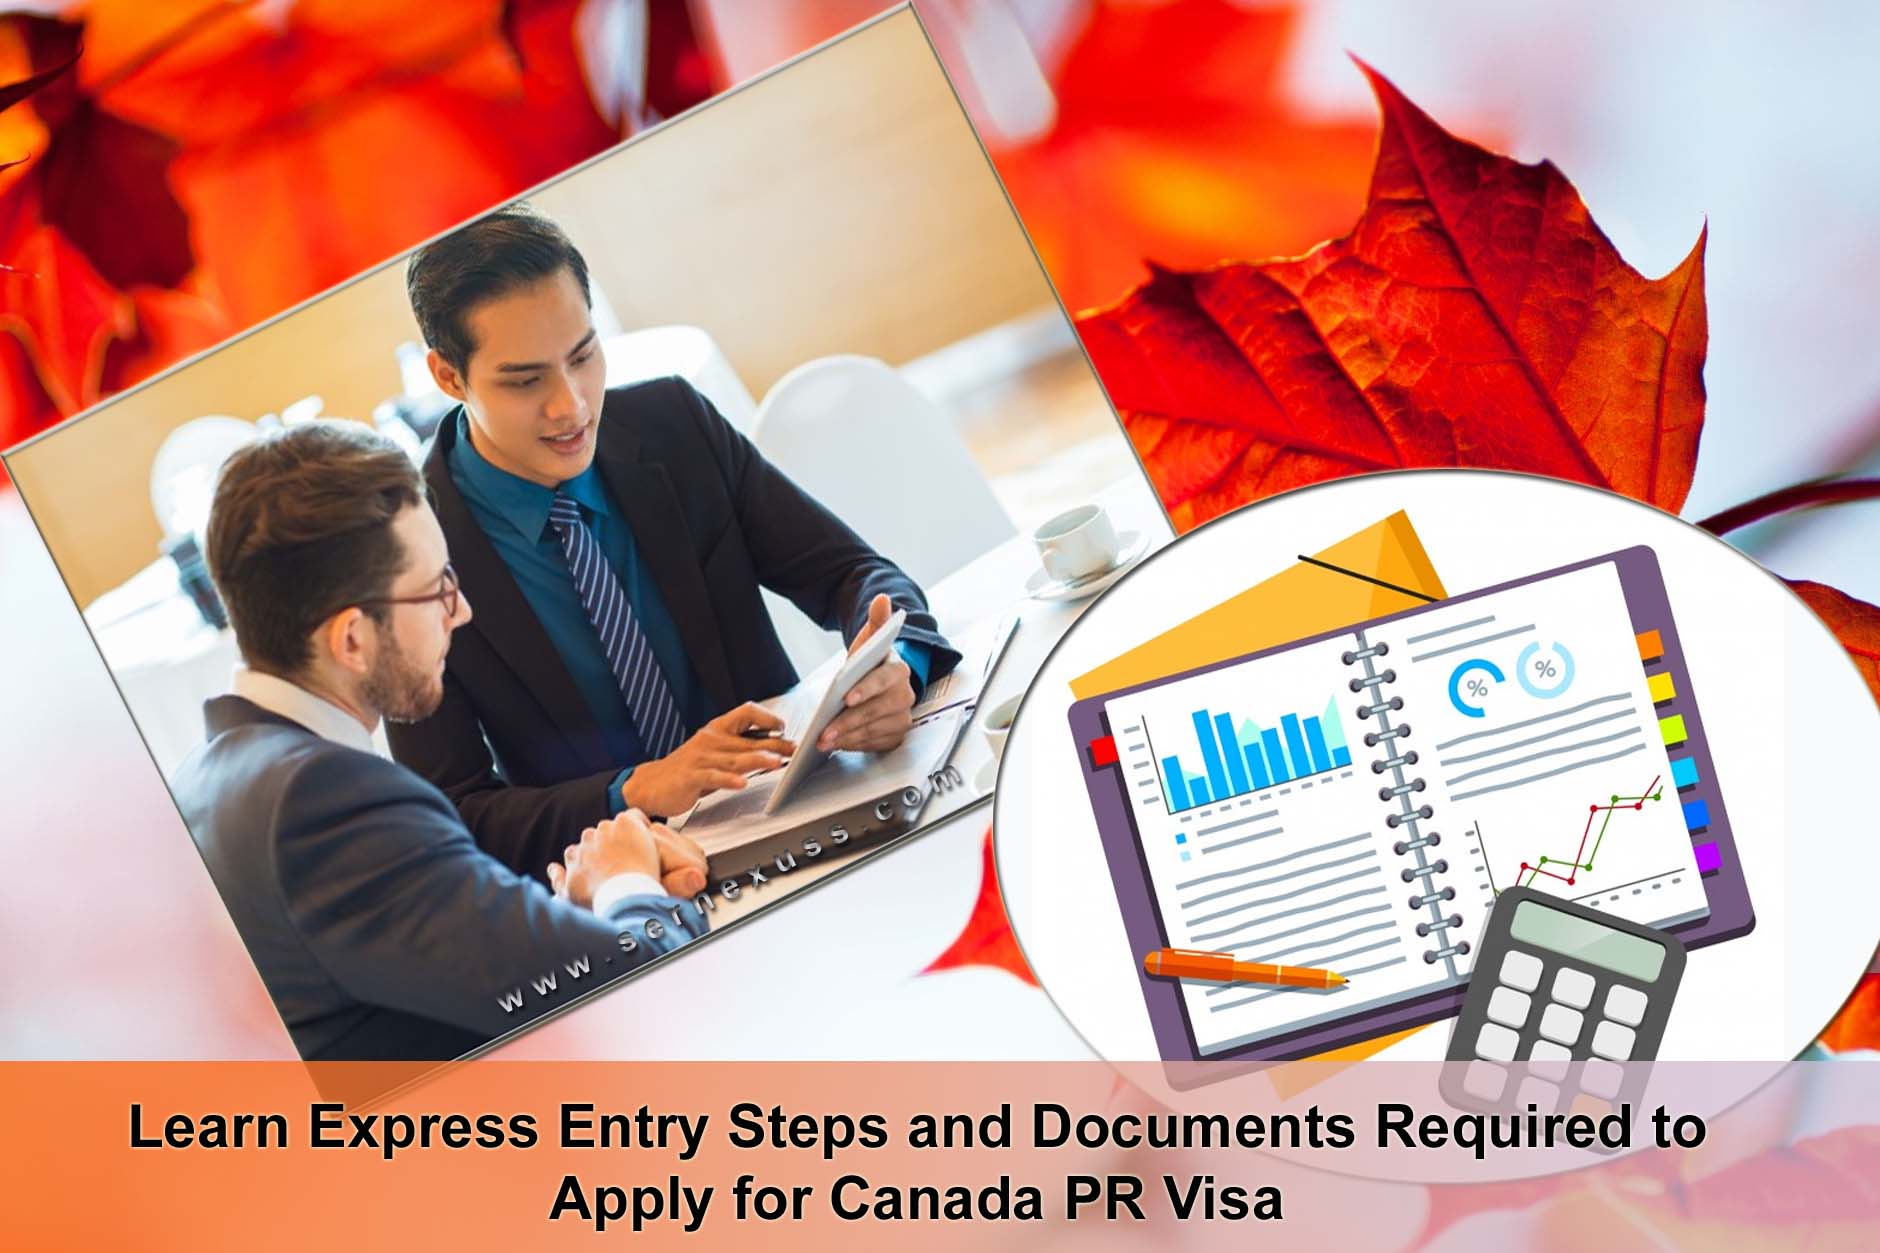 Learn Express Entry Steps and Documents Required to Apply for Canada PR Visa